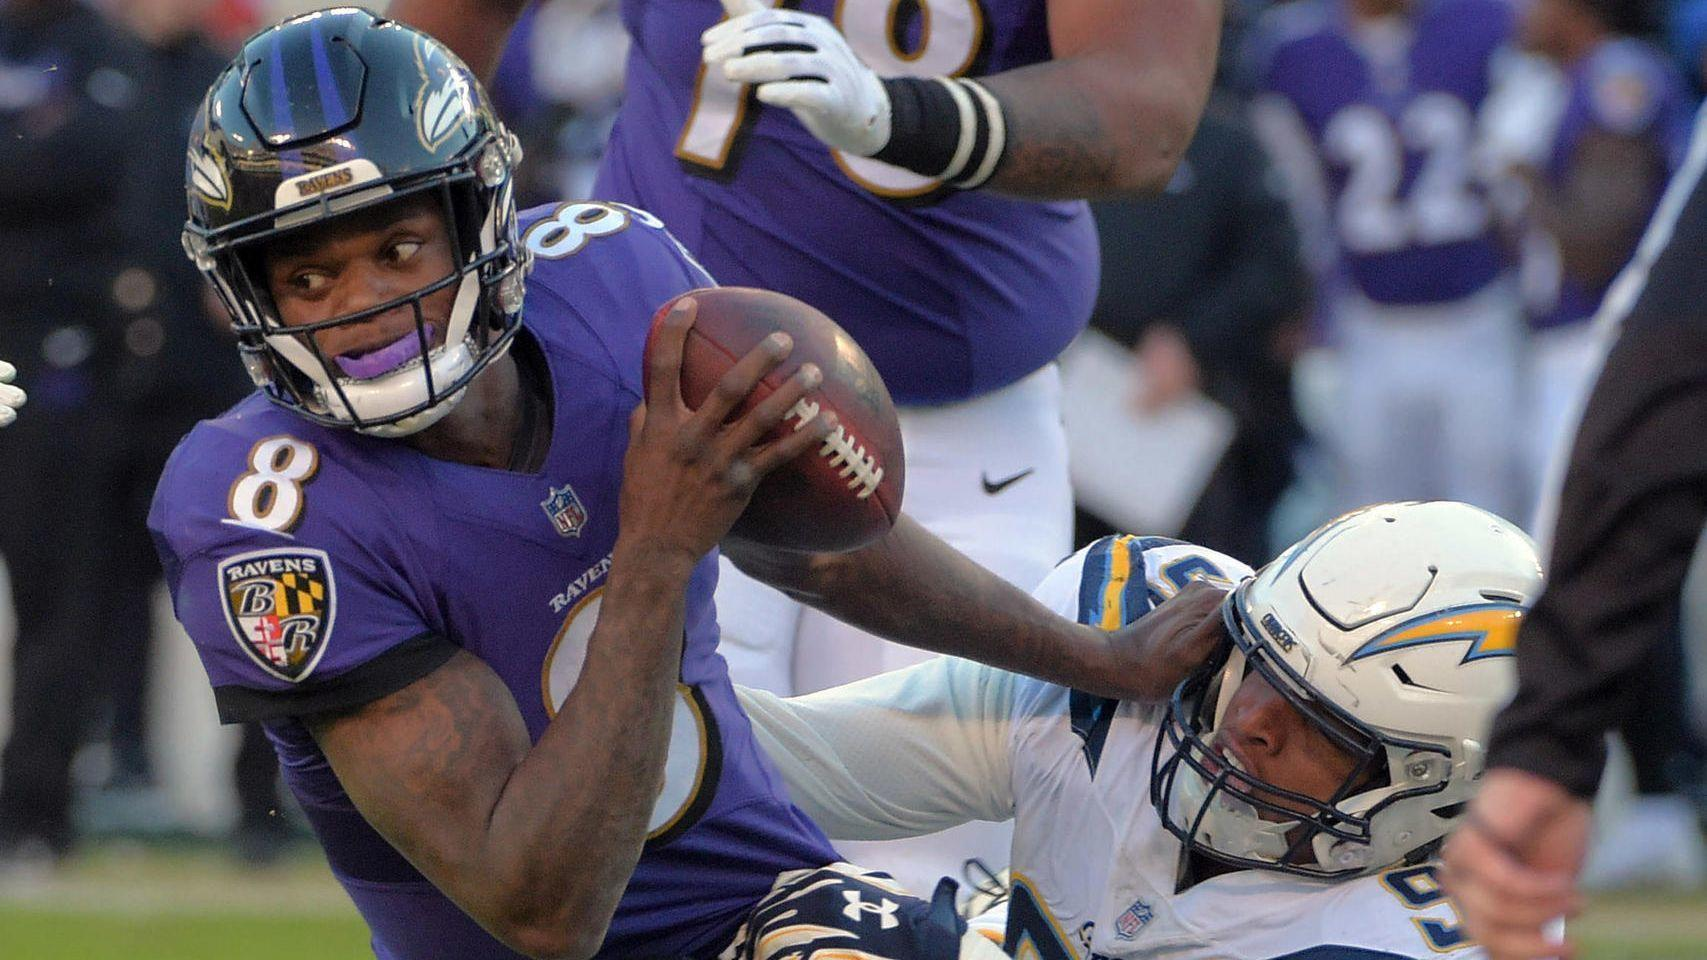 Preston: Ravens need weapons, but developing an offense for Lamar Jackson comes first